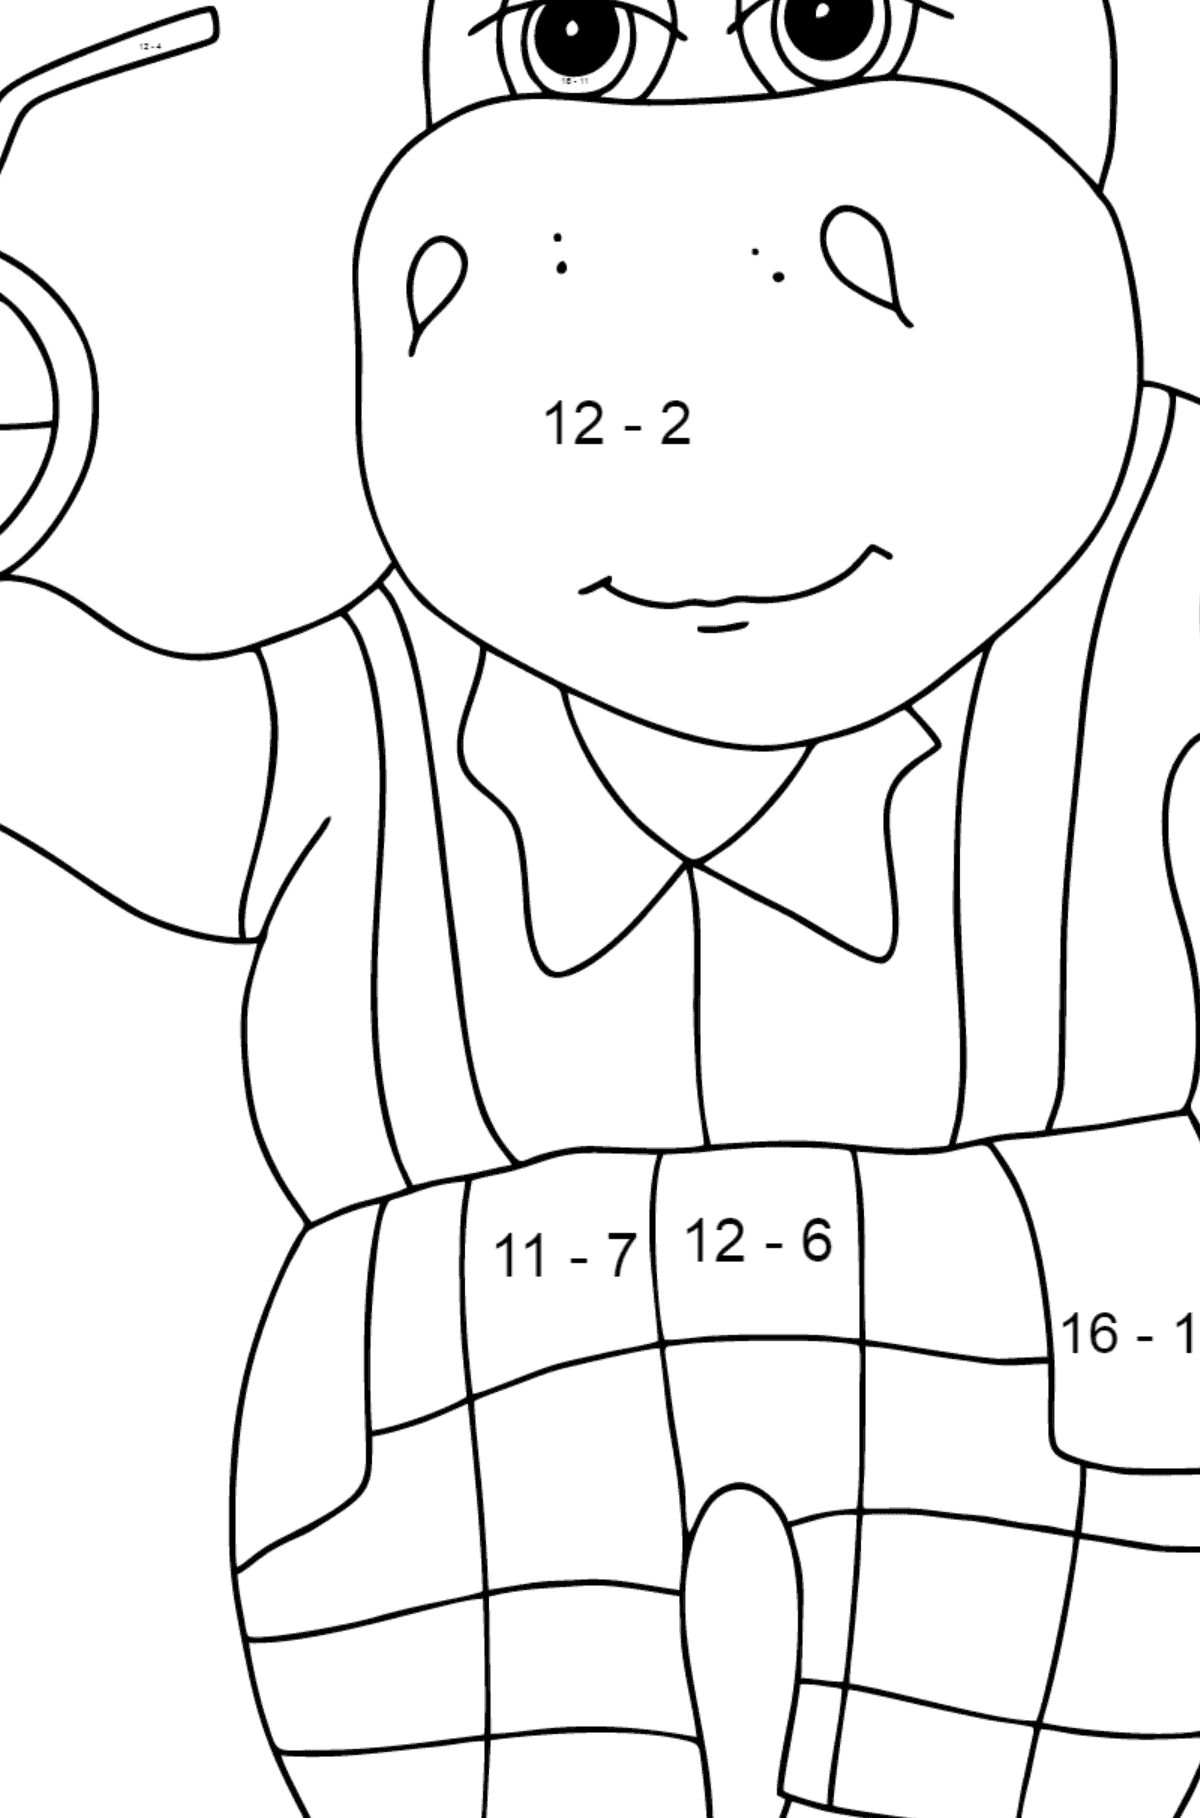 Coloring Page - A Hippo on a Beach with Juice for Children  - Color by Number Substraction